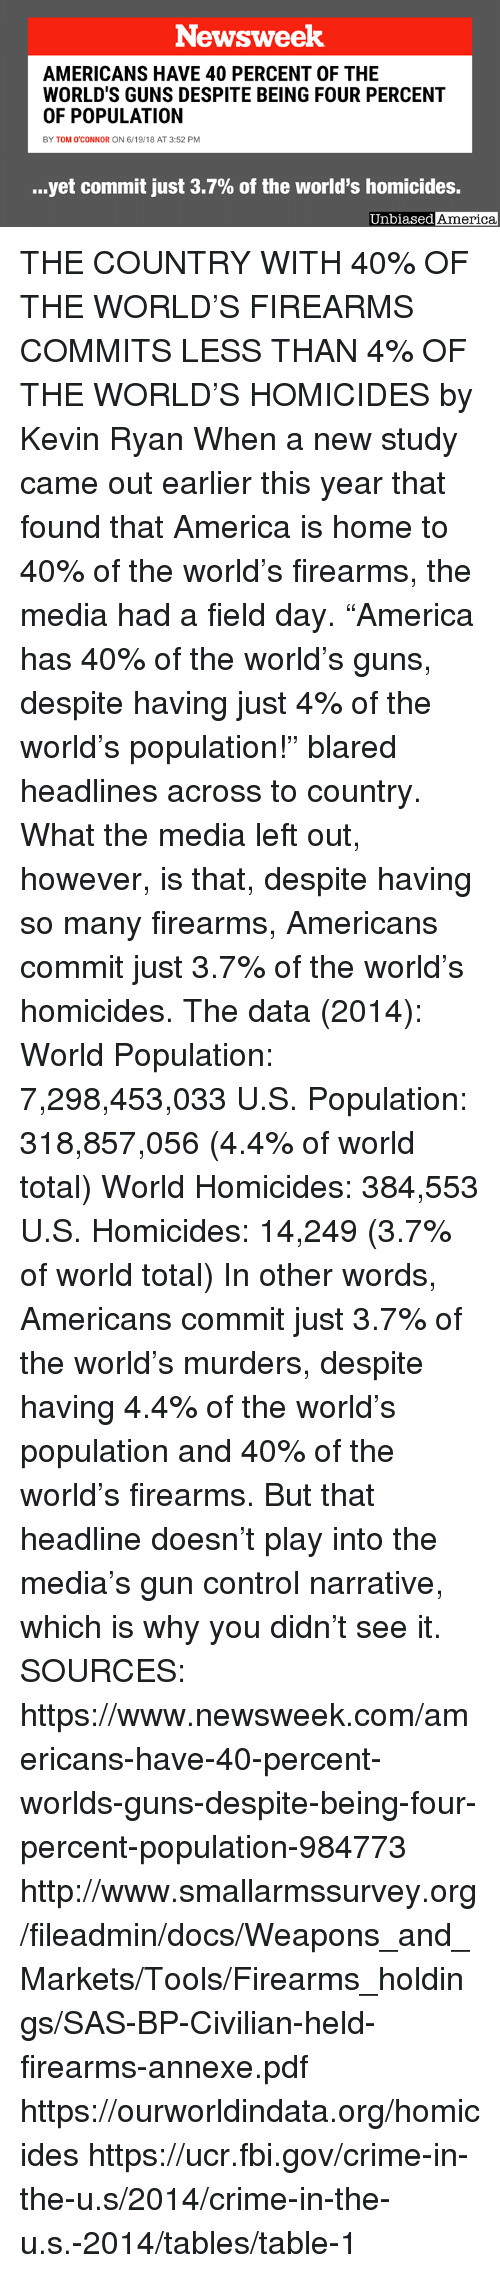 "newsweek: Newsweek  AMERICANS HAVE 40 PERCENT OF THE  WORLD'S GUNS DESPITE BEING FOUR PERCENT  OF POPULATION  BY TOM O'CONNOR ON 6/19/18 AT 3:52 PM  yet commit just 3.7% of the world's homicides.  Unbiased  America THE COUNTRY WITH 40% OF THE WORLD'S FIREARMS COMMITS LESS THAN 4% OF THE WORLD'S HOMICIDES by Kevin Ryan  When a new study came out earlier this year that found that America is home to 40% of the world's firearms, the media had a field day.  ""America has 40% of the world's guns, despite having just 4% of the world's population!"" blared headlines across to country.  What the media left out, however, is that, despite having so many firearms, Americans commit just 3.7% of the world's homicides.  The data (2014):  World Population:  7,298,453,033 U.S. Population:  318,857,056 (4.4% of world total)  World Homicides: 384,553  U.S. Homicides: 14,249 (3.7% of world total)  In other words, Americans commit just 3.7% of the world's murders, despite having 4.4% of the world's population and 40% of the world's firearms.  But that headline doesn't play into the media's gun control narrative, which is why you didn't see it.   SOURCES: https://www.newsweek.com/americans-have-40-percent-worlds-guns-despite-being-four-percent-population-984773 http://www.smallarmssurvey.org/fileadmin/docs/Weapons_and_Markets/Tools/Firearms_holdings/SAS-BP-Civilian-held-firearms-annexe.pdf https://ourworldindata.org/homicides https://ucr.fbi.gov/crime-in-the-u.s/2014/crime-in-the-u.s.-2014/tables/table-1"